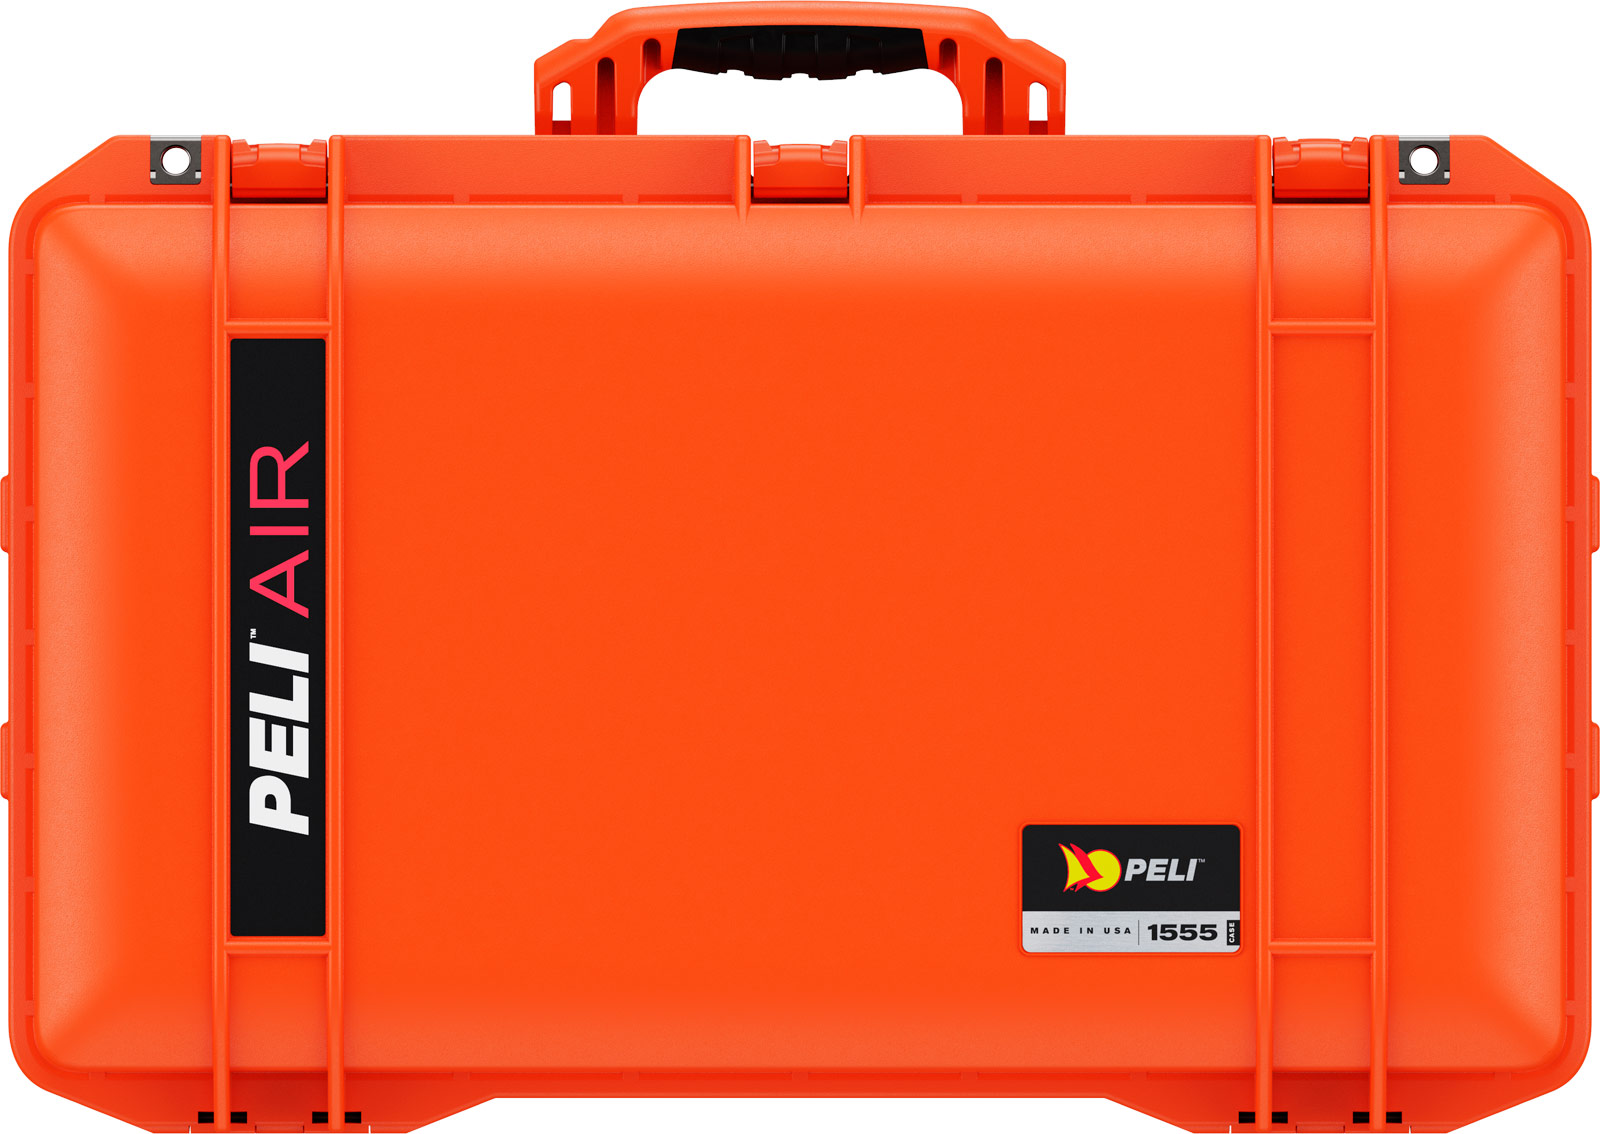 peli 1555 orange air case hard cases